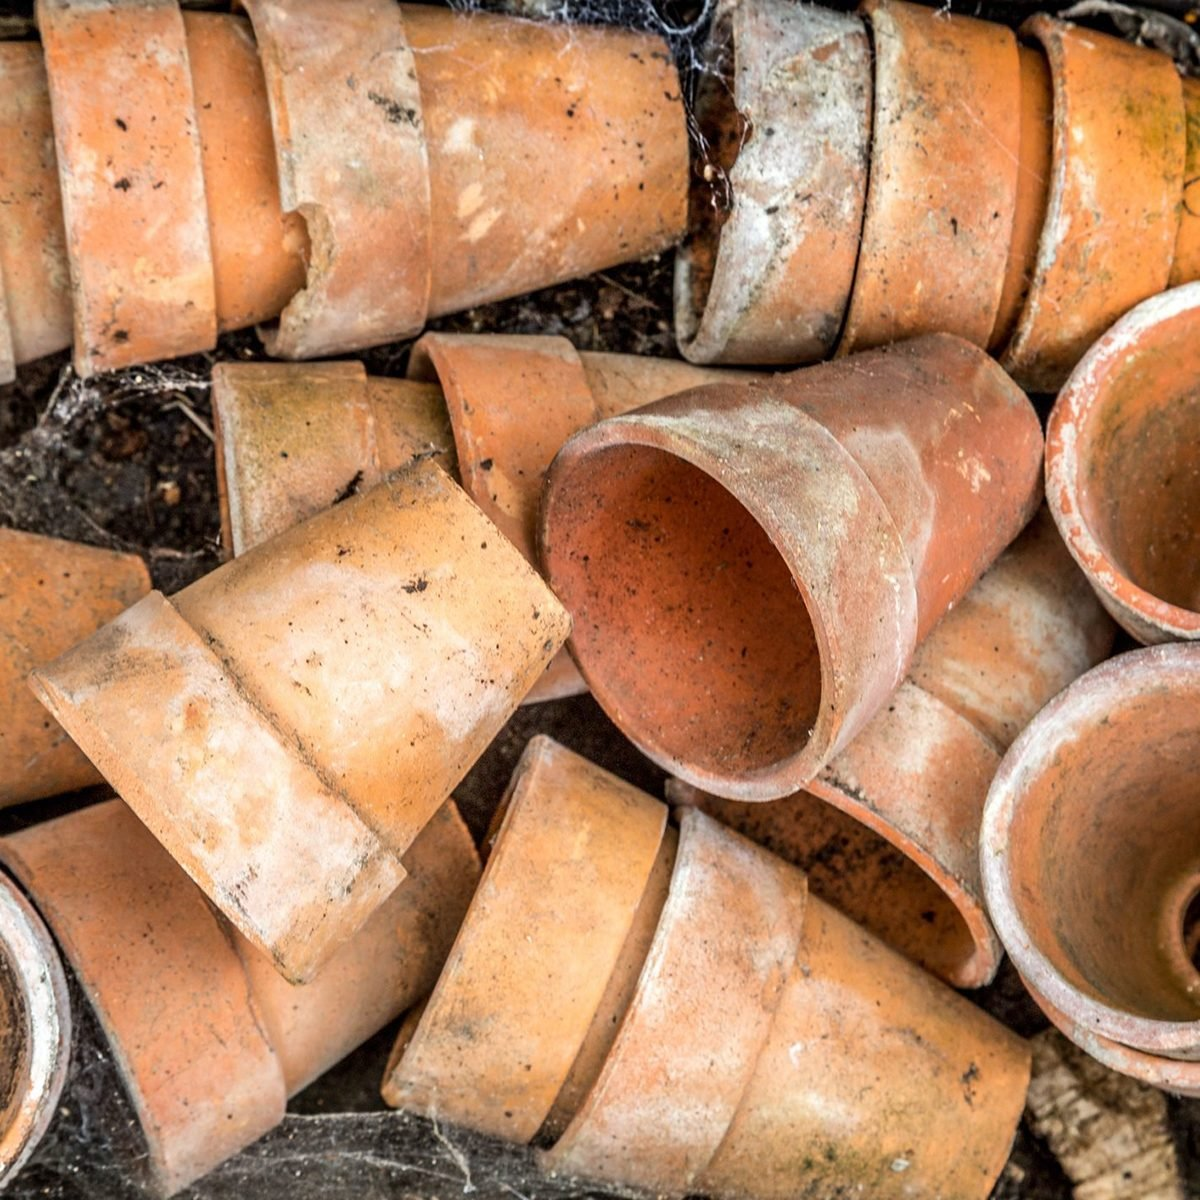 Old terracotta plant pots in a box.